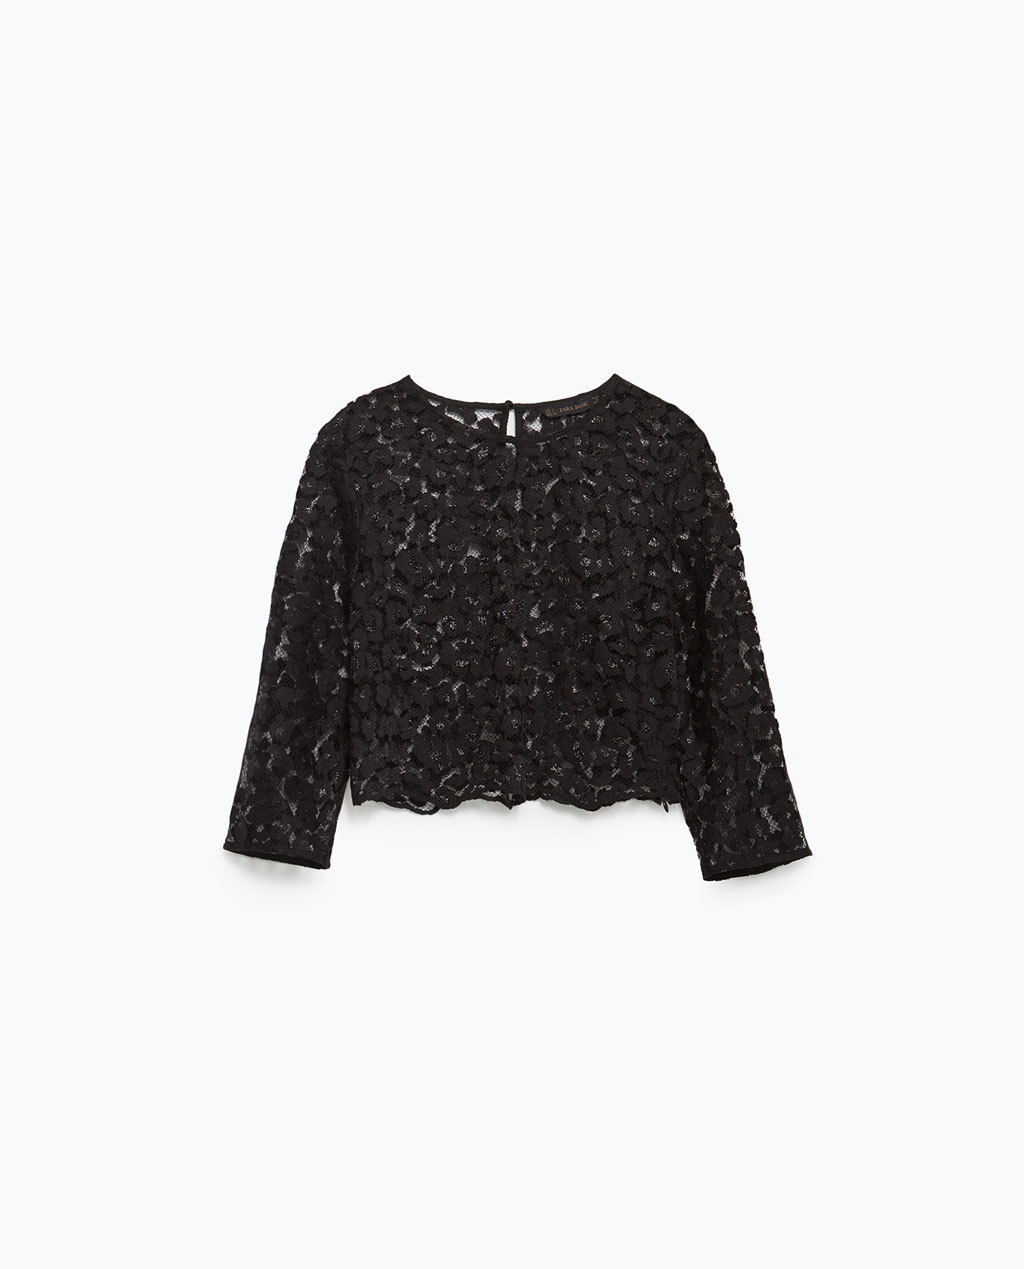 Lace Cropped Top - neckline: round neck; pattern: plain; predominant colour: black; occasions: evening; length: standard; style: top; fit: straight cut; sleeve length: 3/4 length; sleeve style: standard; pattern type: fabric; texture group: other - light to midweight; embellishment: lace; season: a/w 2015; wardrobe: event